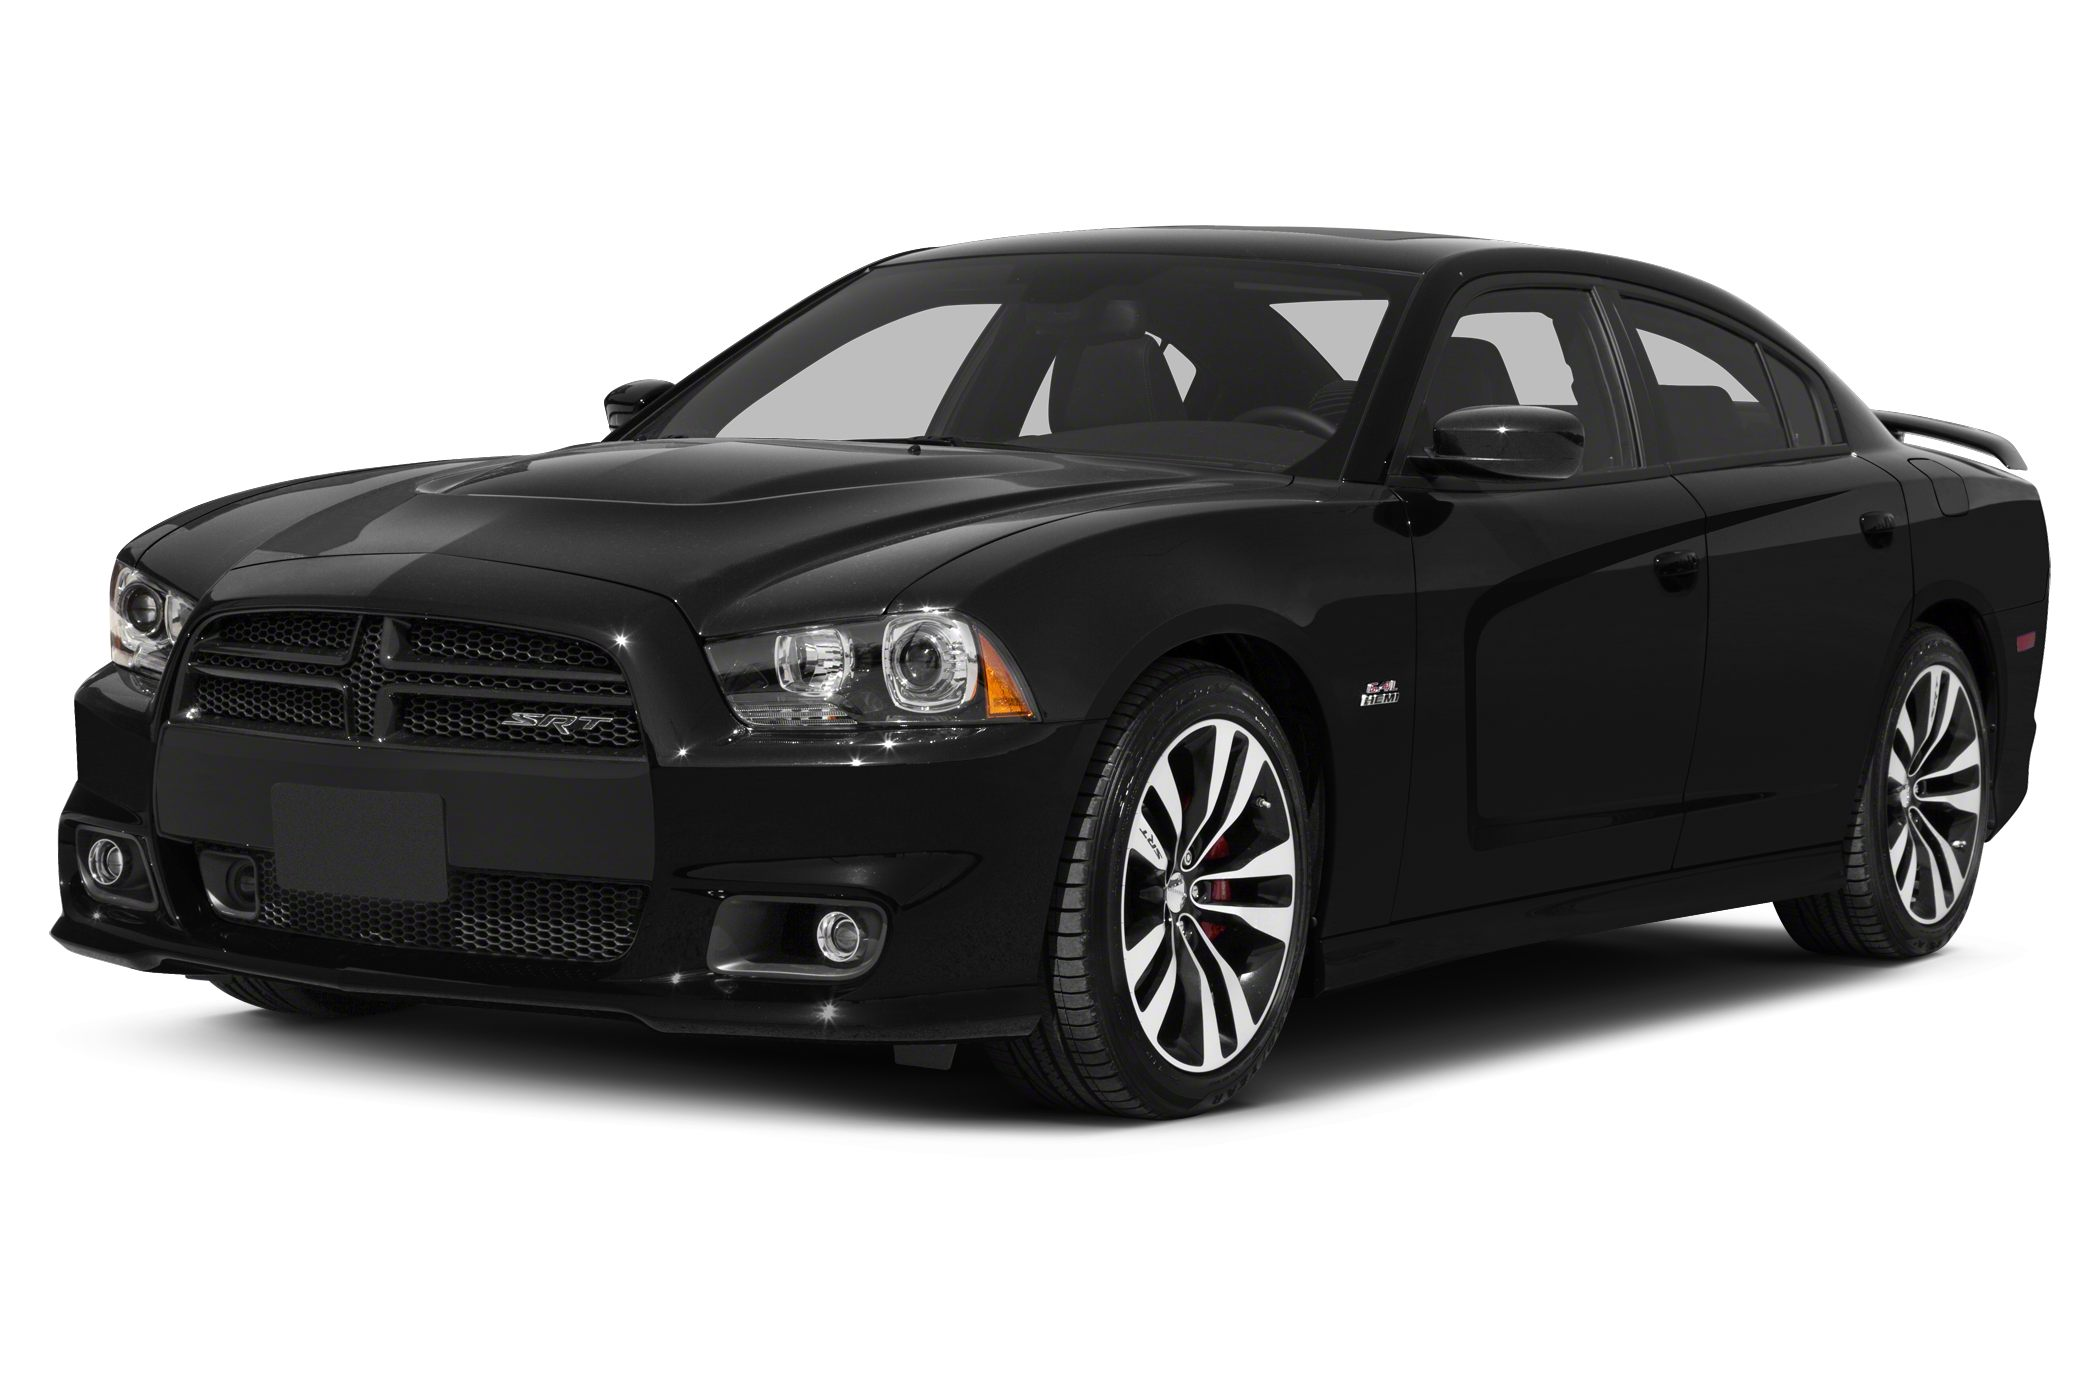 2013 Dodge Charger SRT8 Black Recent Arrival 2013 Dodge Charger SRT8 RWD 5-Speed Automatic SRT HE